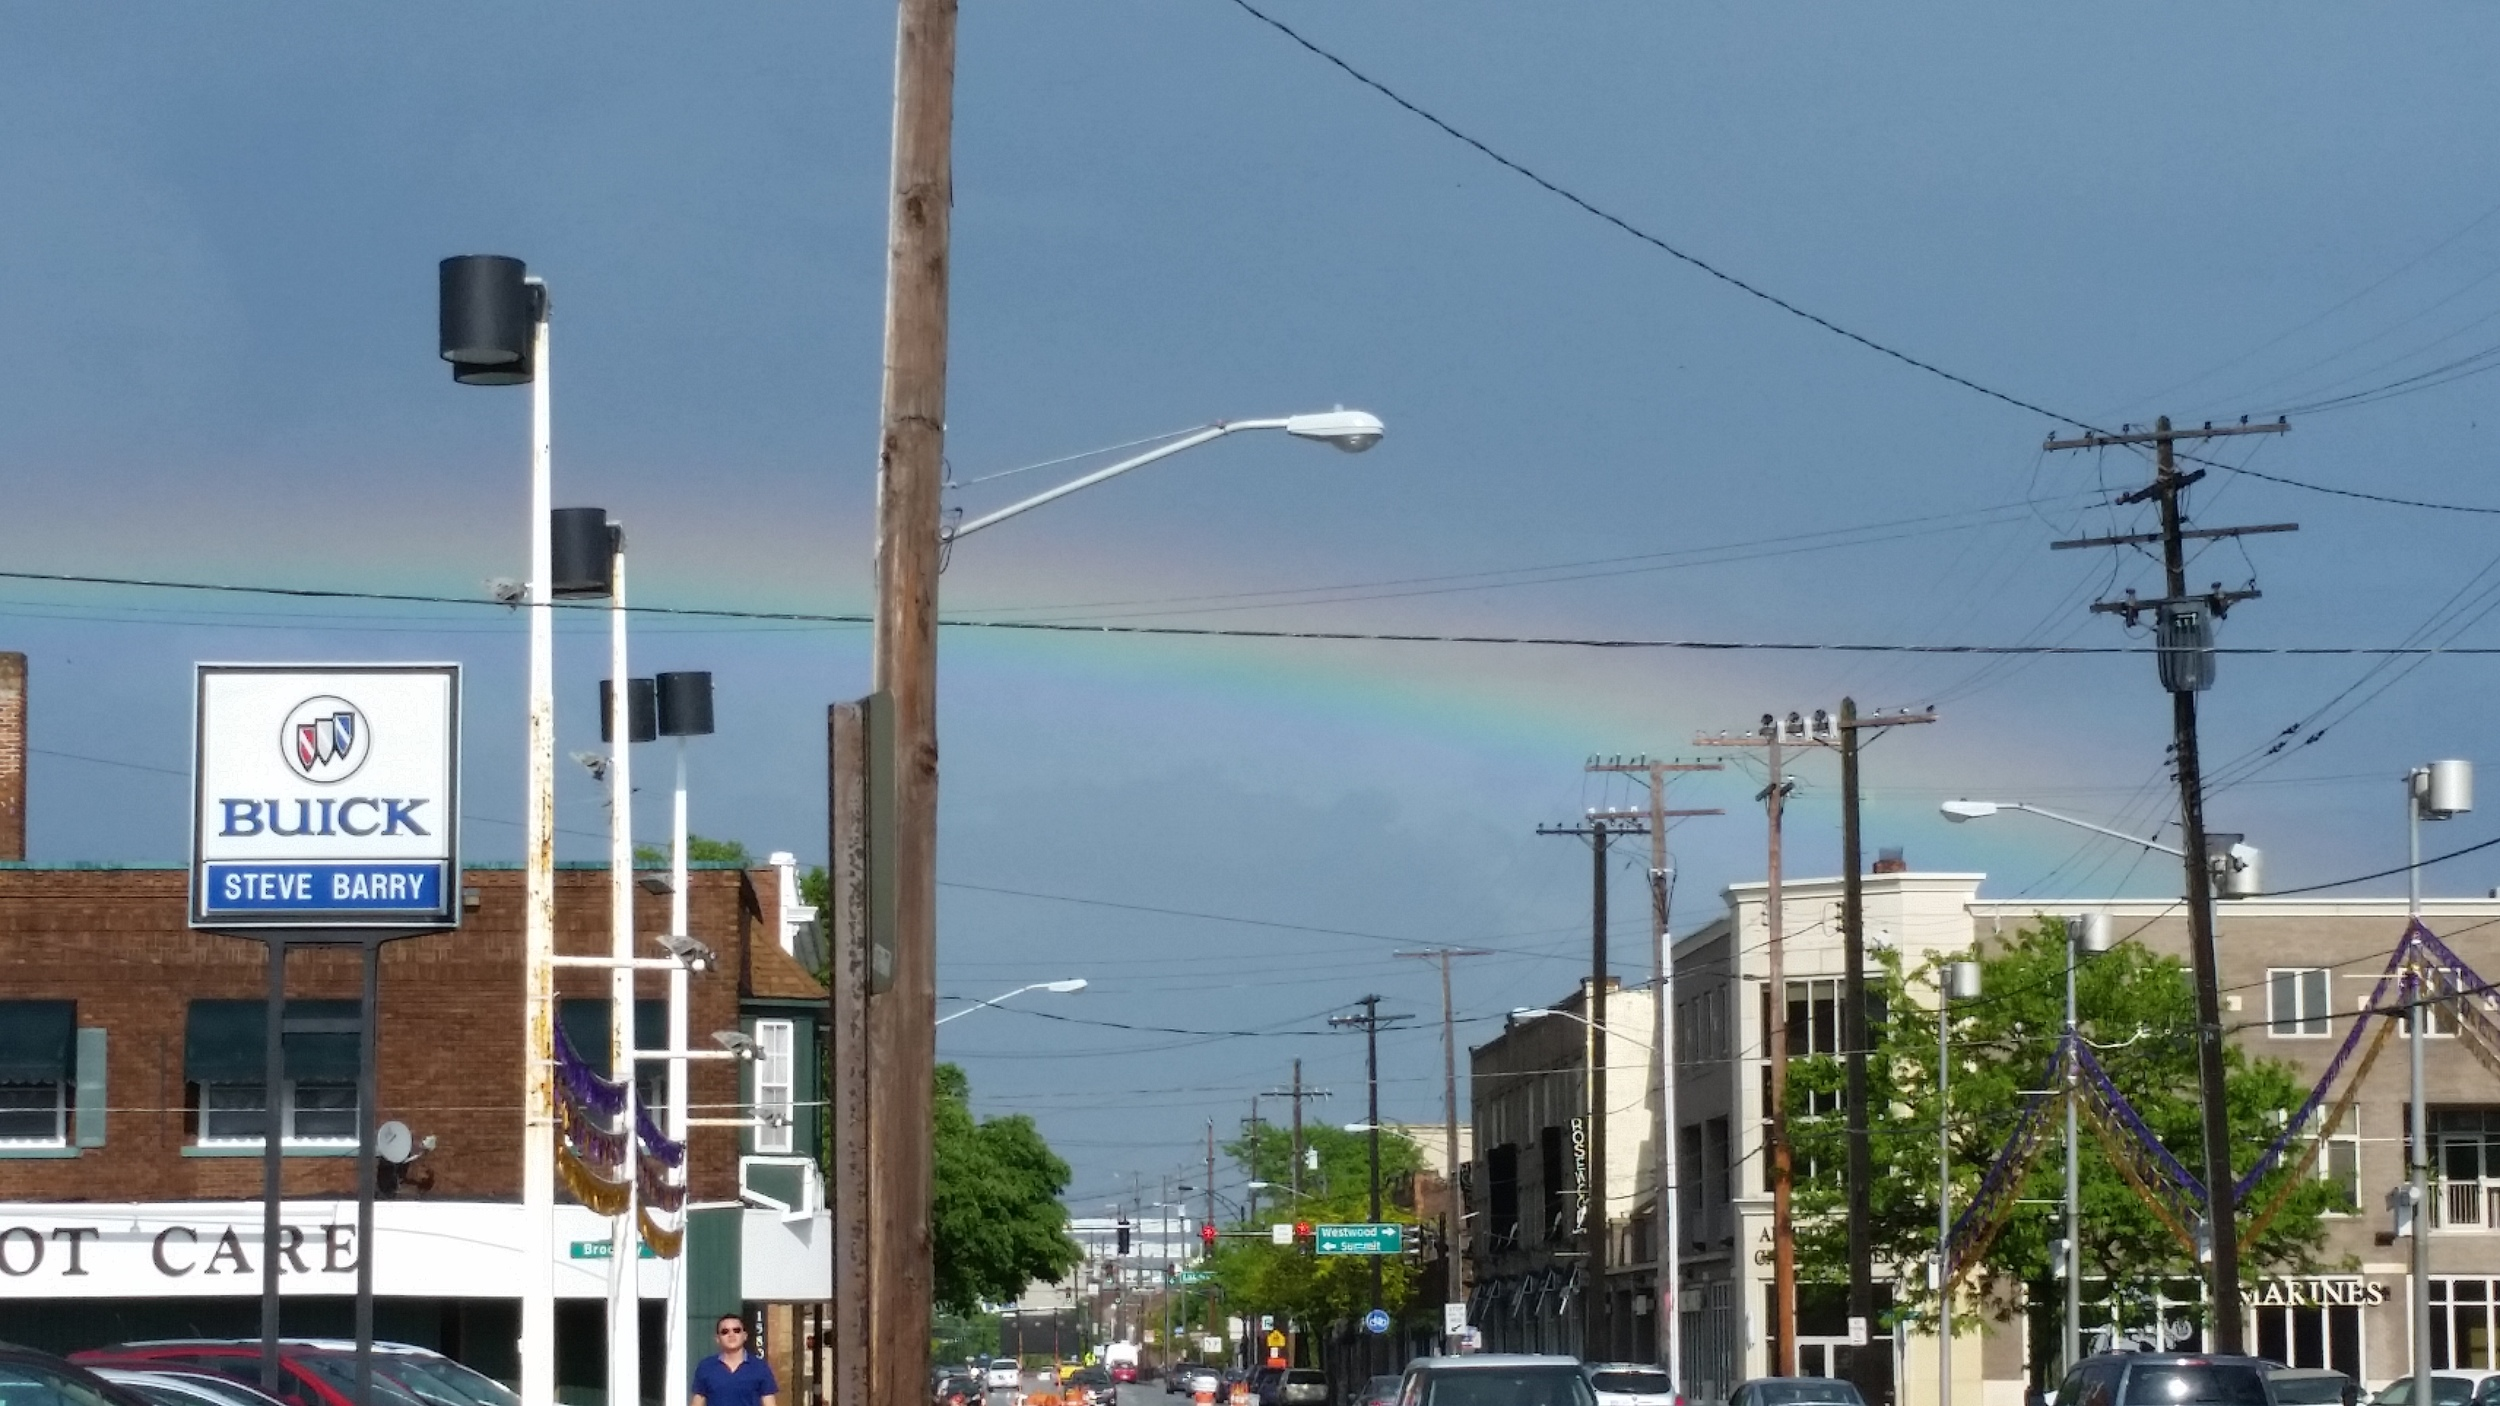 Need further proof the leather jacket was destined for me? A rainbow appeared when I left the store. See? Even the heavens agree.